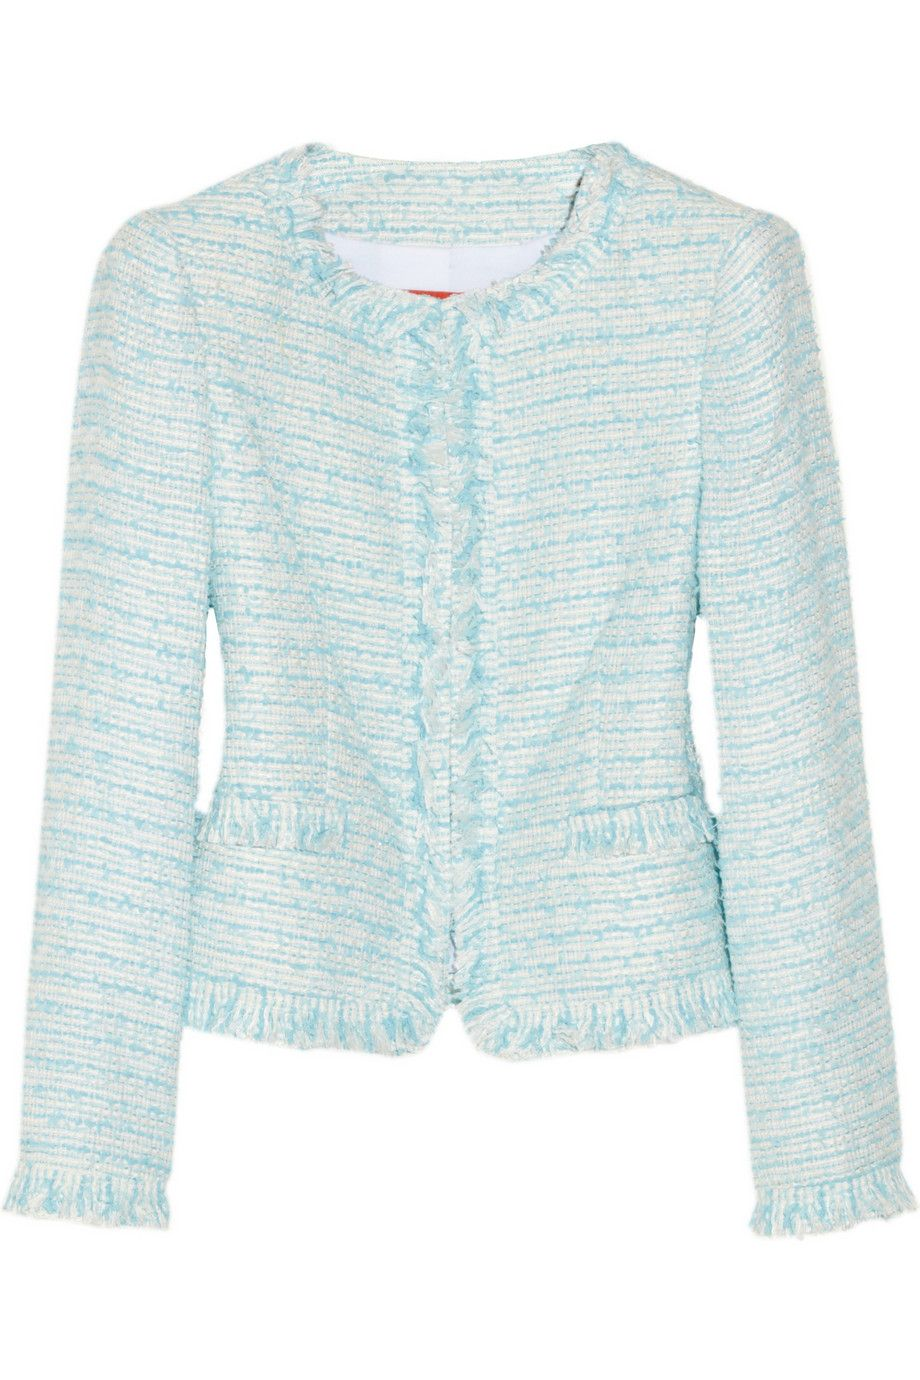 bfa7a6425 Kidman tweed jacket | Alice + Olivia | 50% off | THE OUTNET | Жакет ...